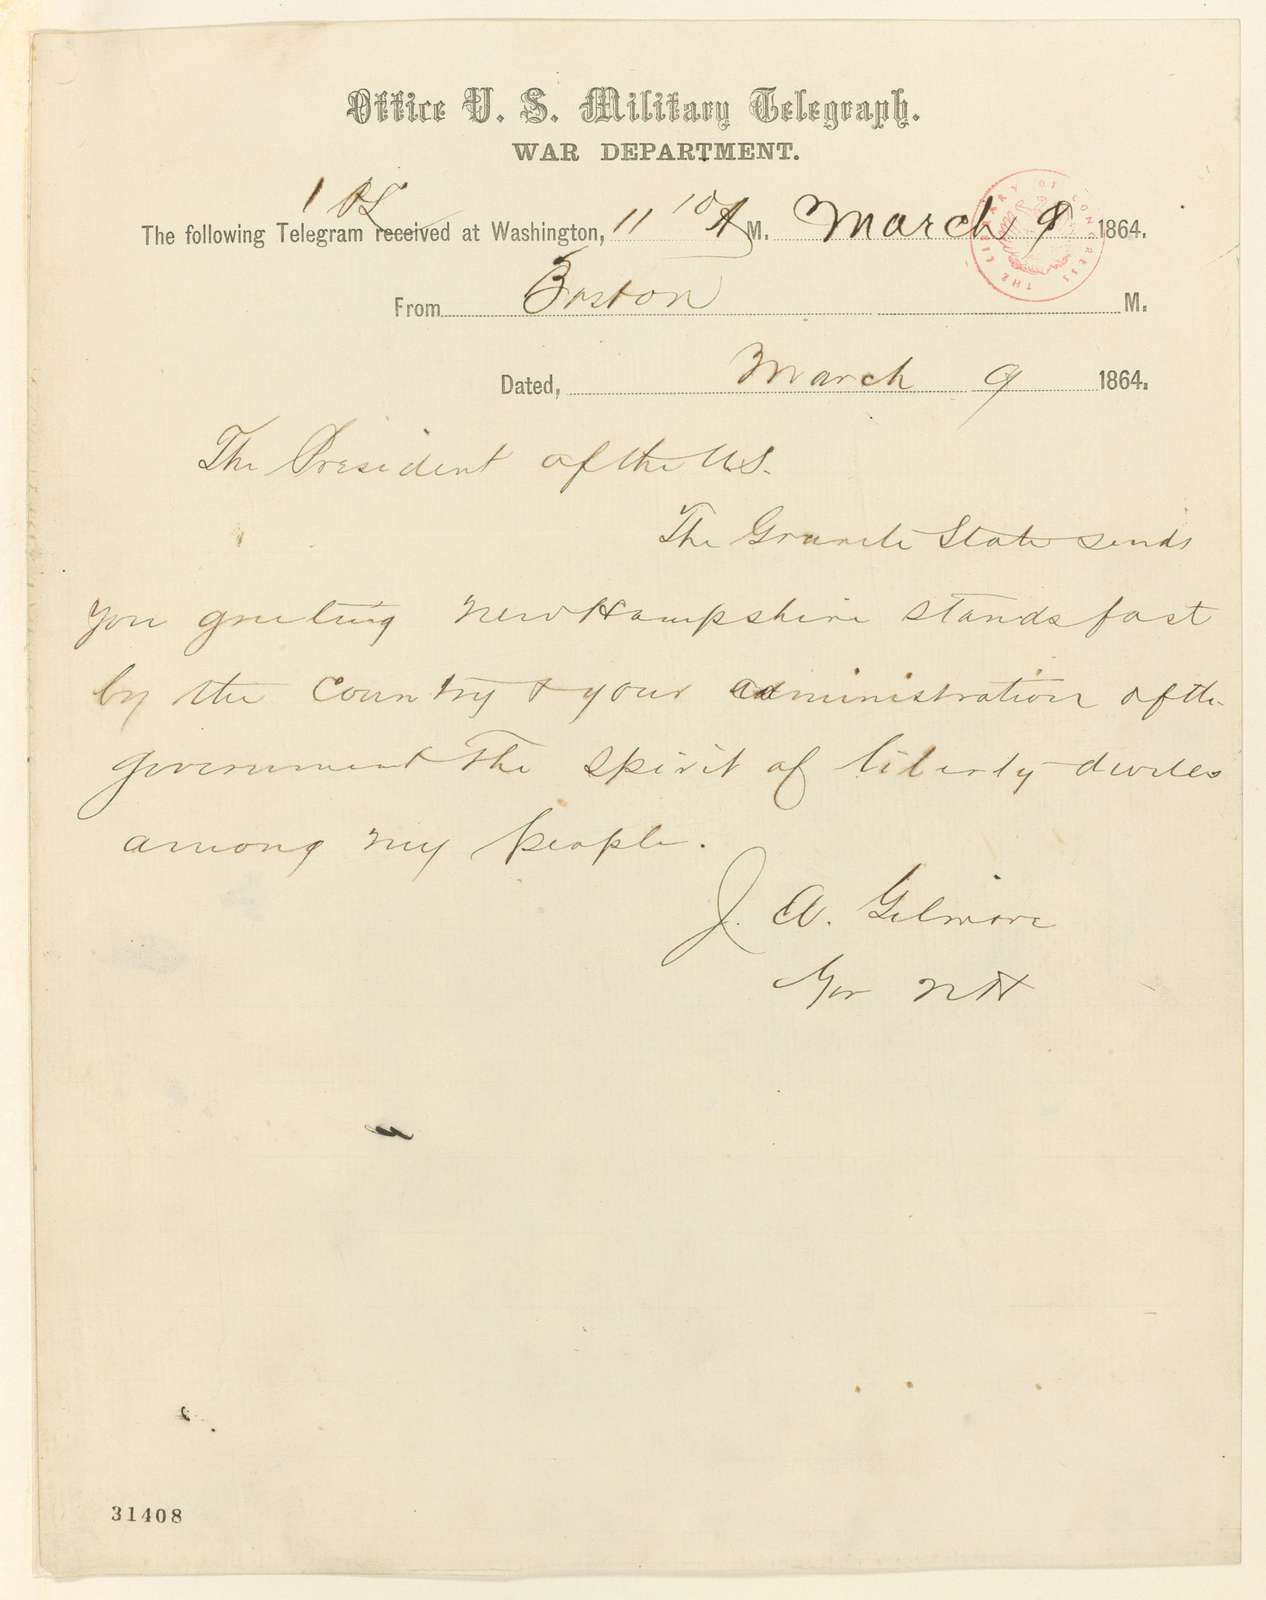 Abraham Lincoln papers: Series 1. General Correspondence. 1833-1916: Joseph A. Gilmore to Abraham Lincoln, Wednesday, March 09, 1864 (Telegram reporting New Hampshire election results)